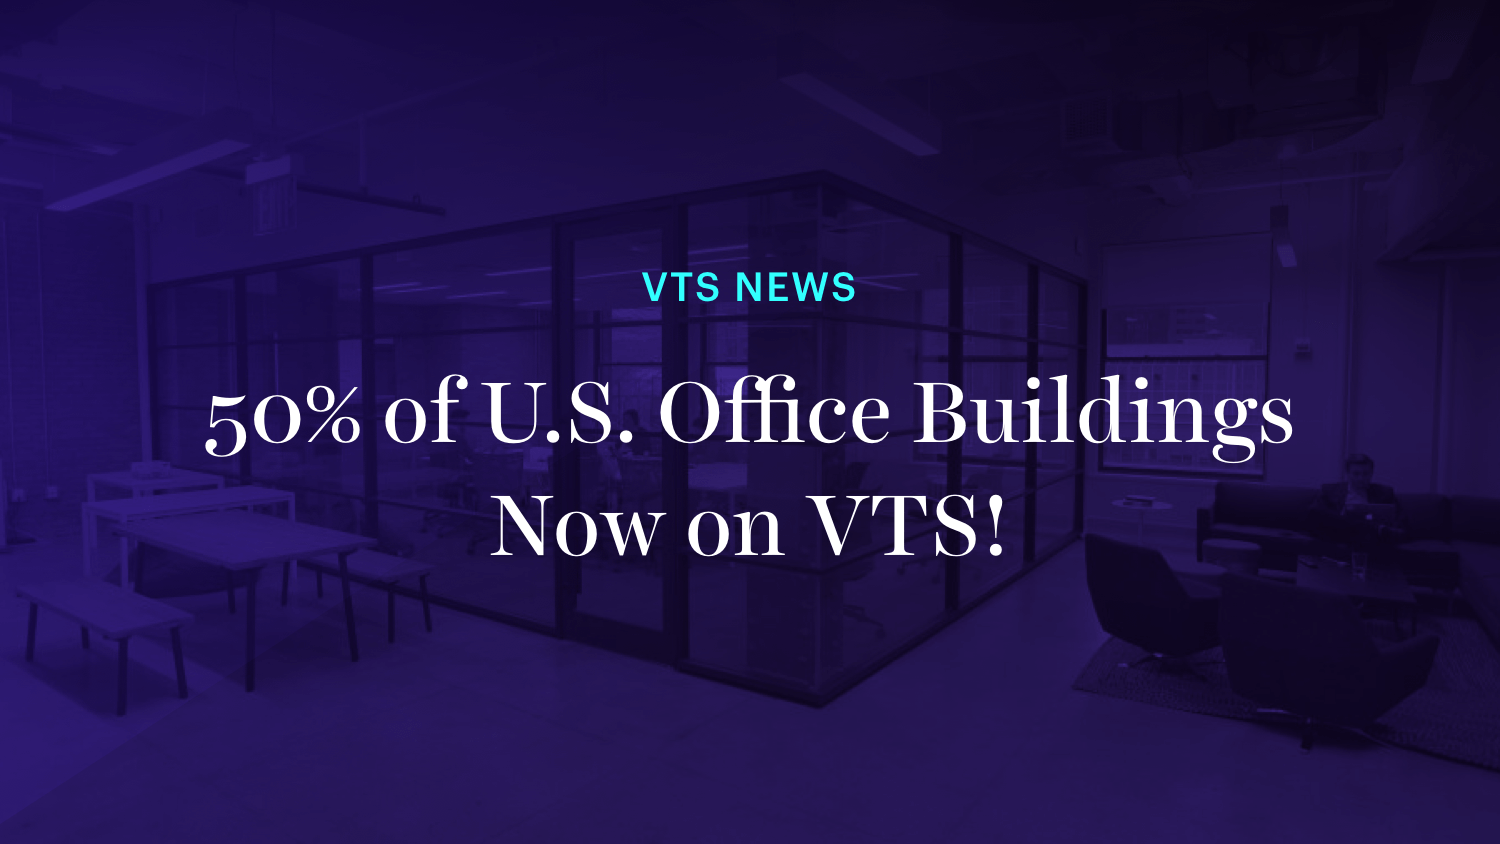 50% of U.S. Office Buildings Now on VTS!